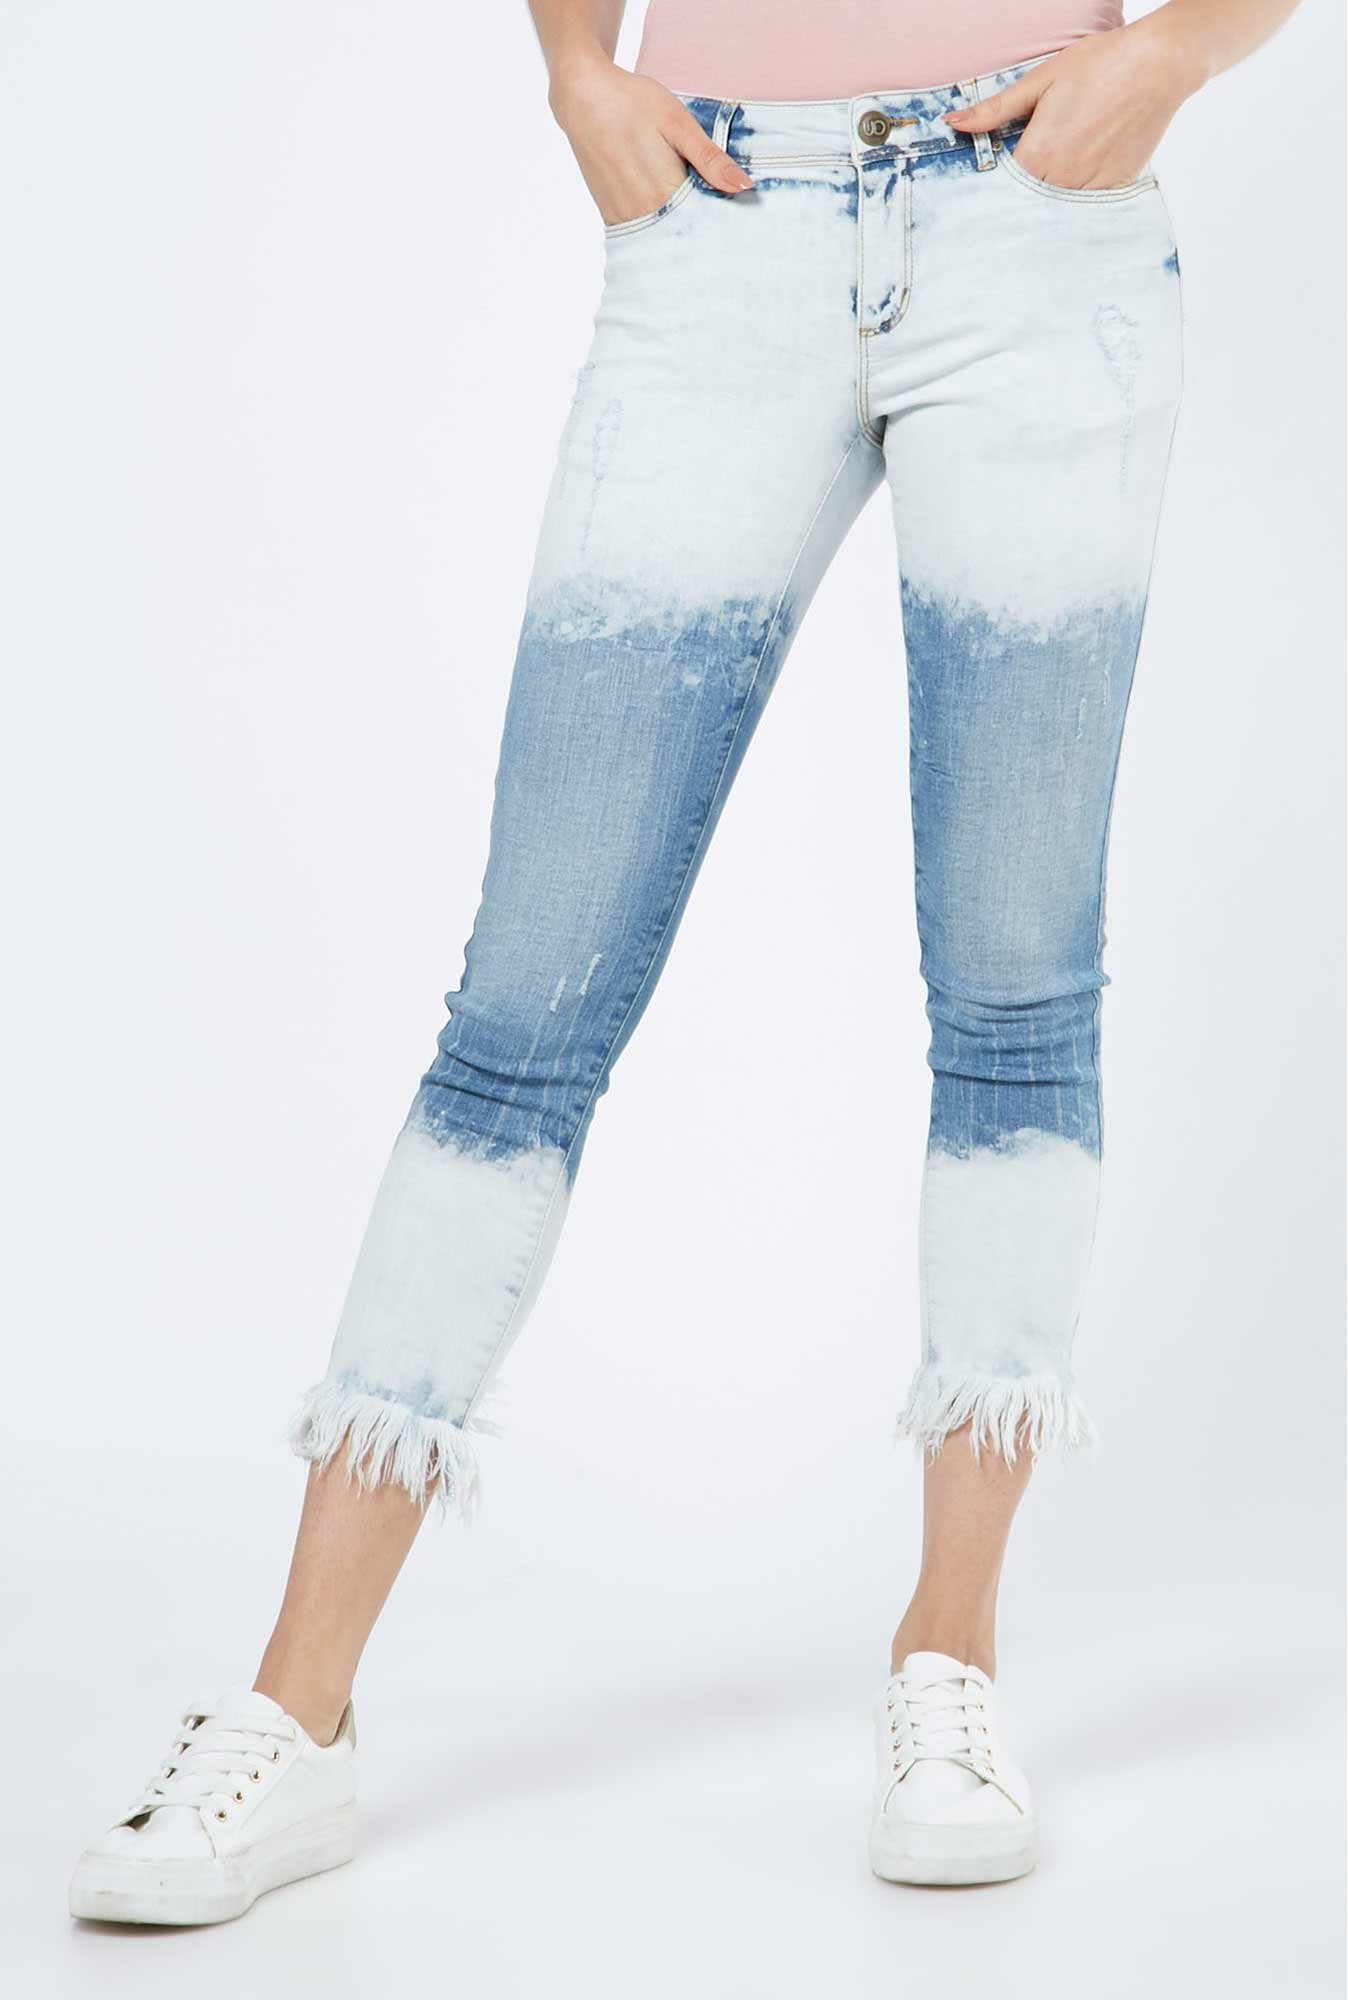 Nuon by Westside Blue Jeans